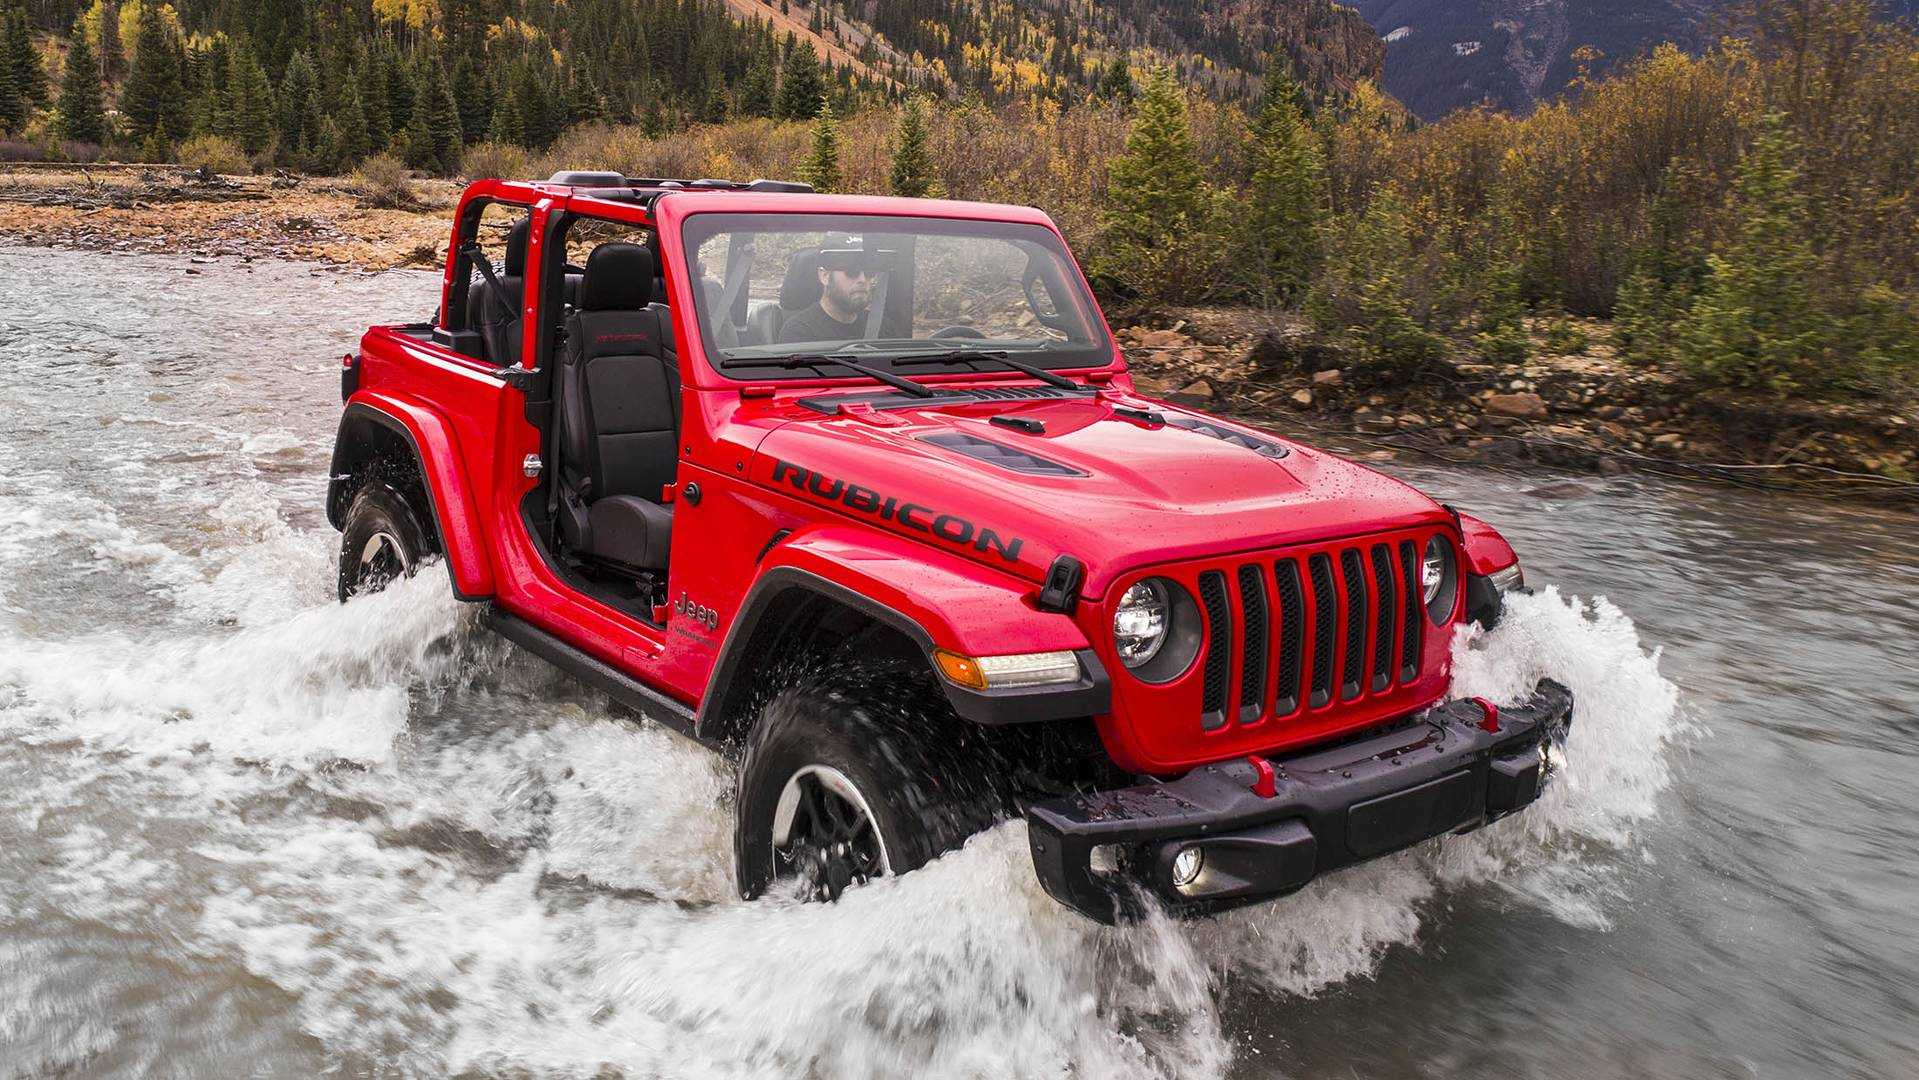 Plug In Hybrid Jeep Wrangler Confirmed For 2020 Model Year